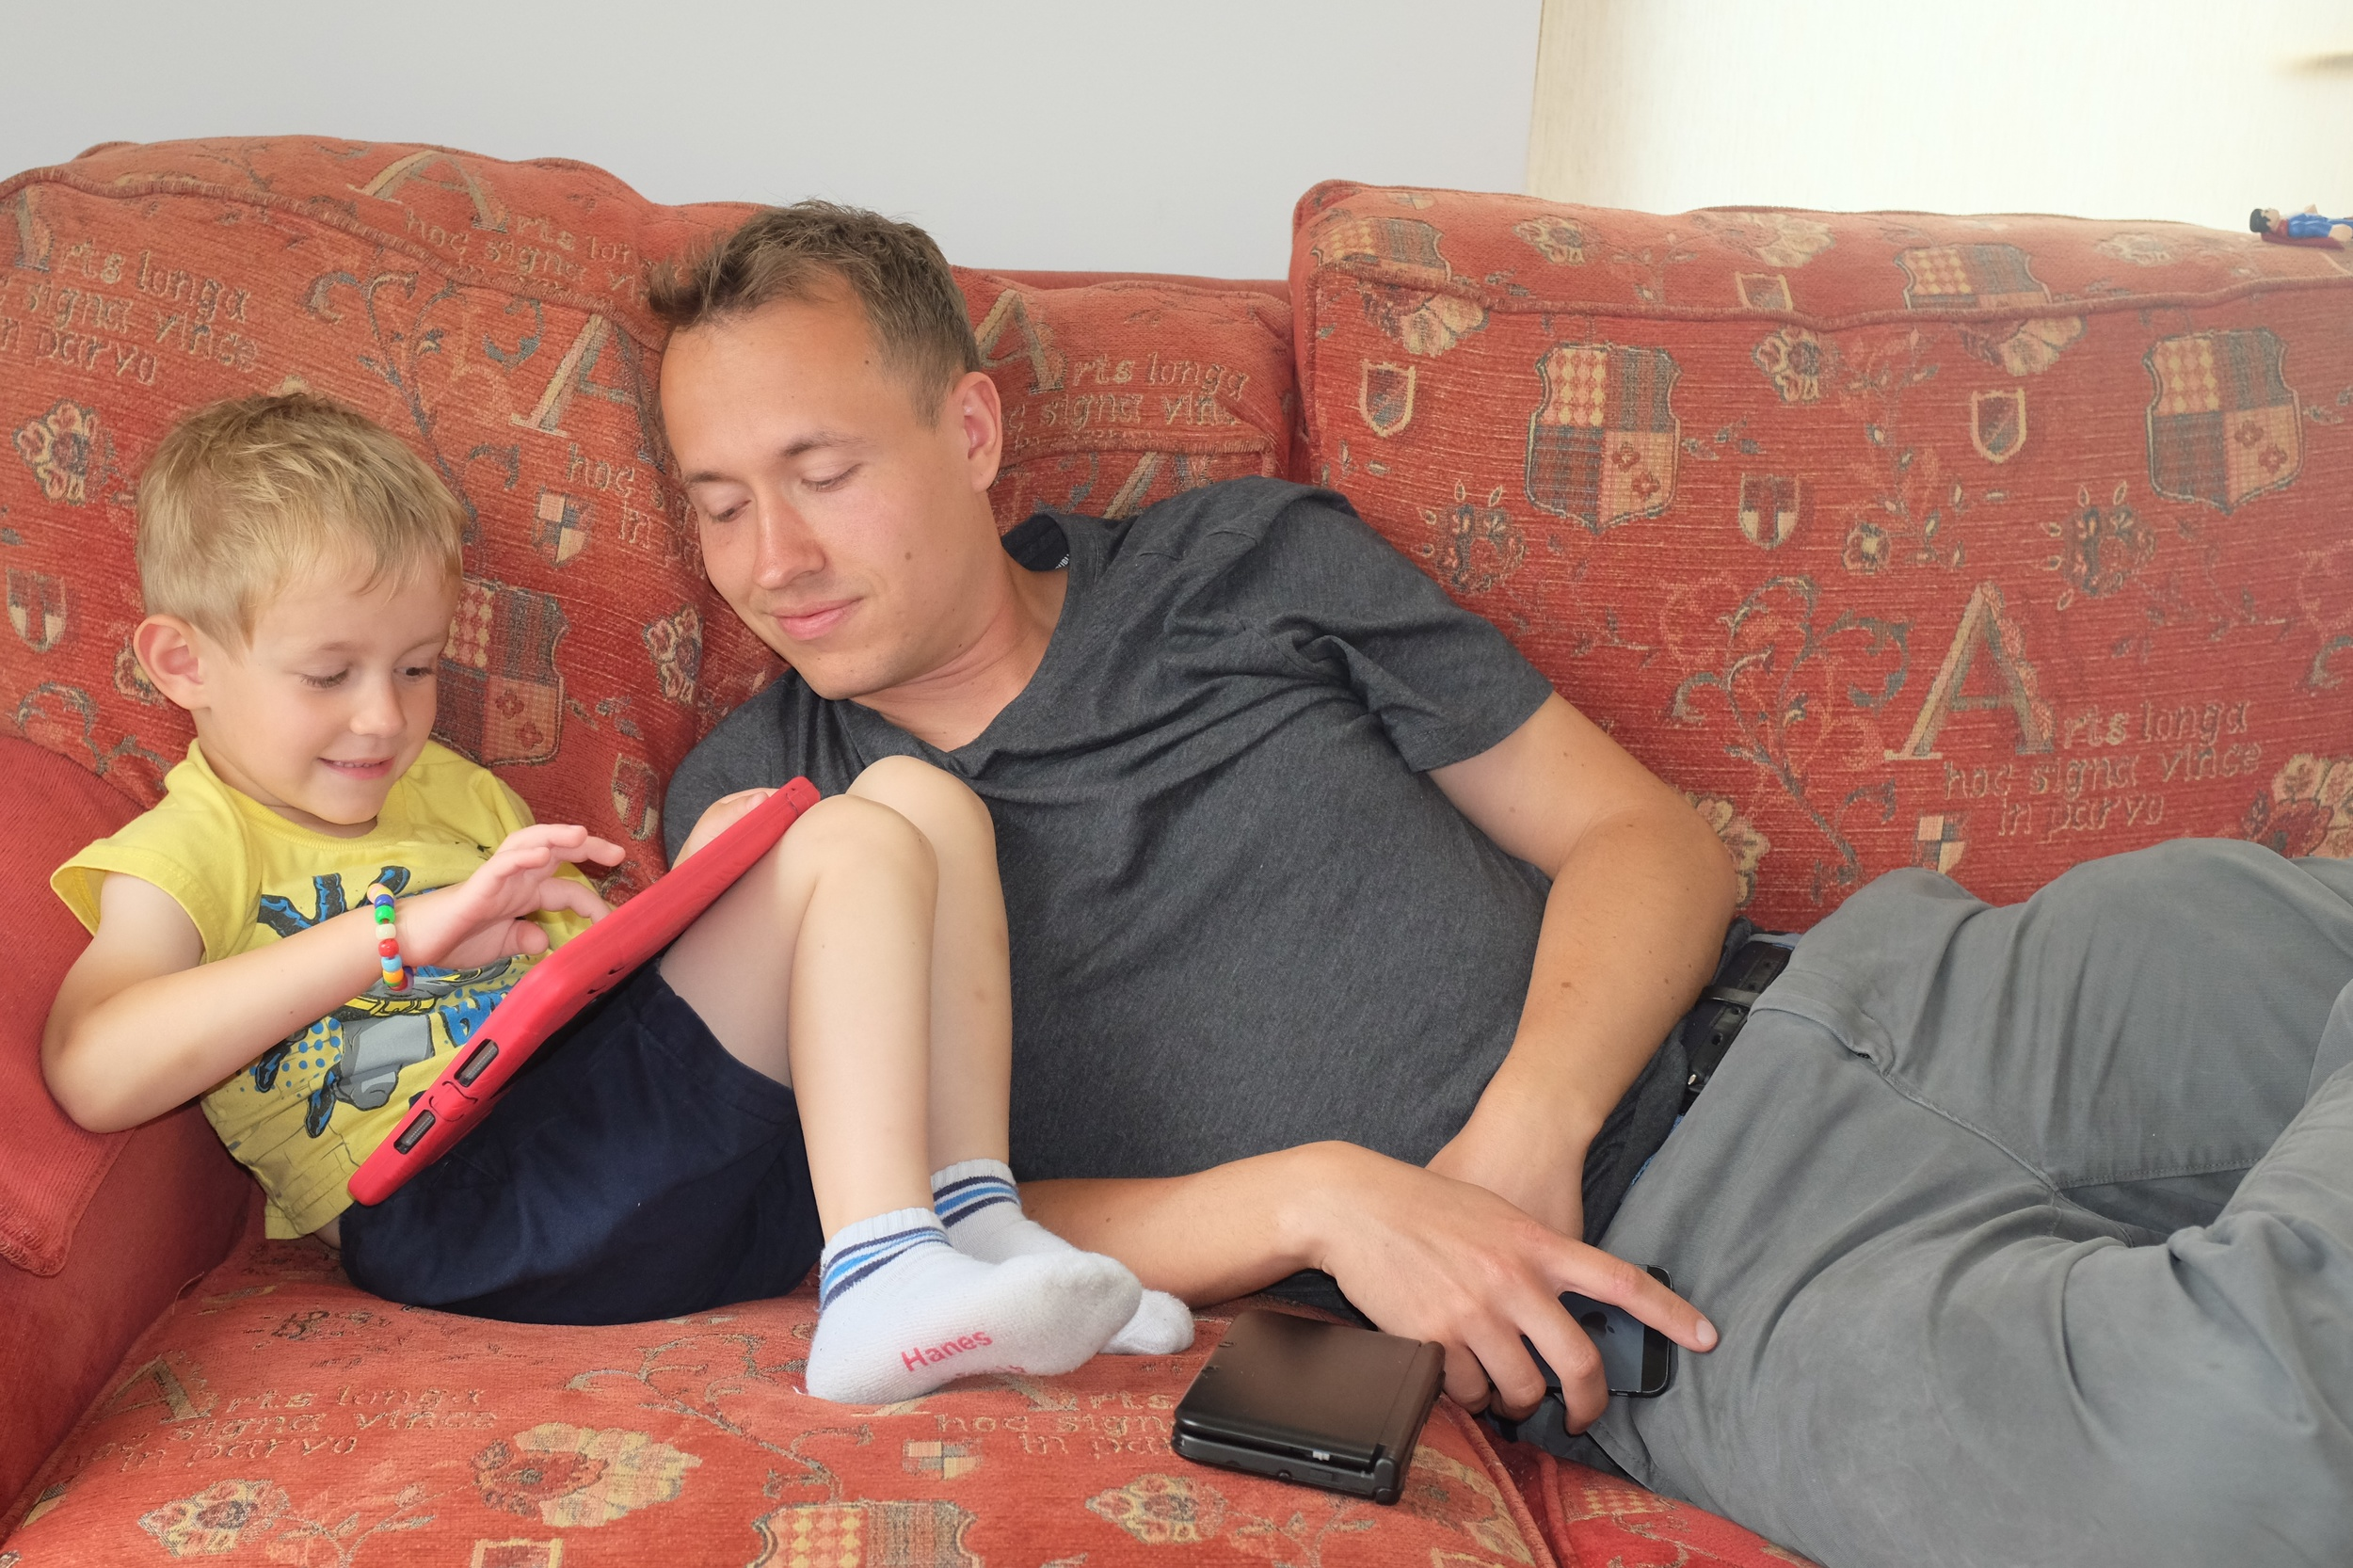 Kian playing Lego Star Wars on the iPad while daddy gives him helpful hints